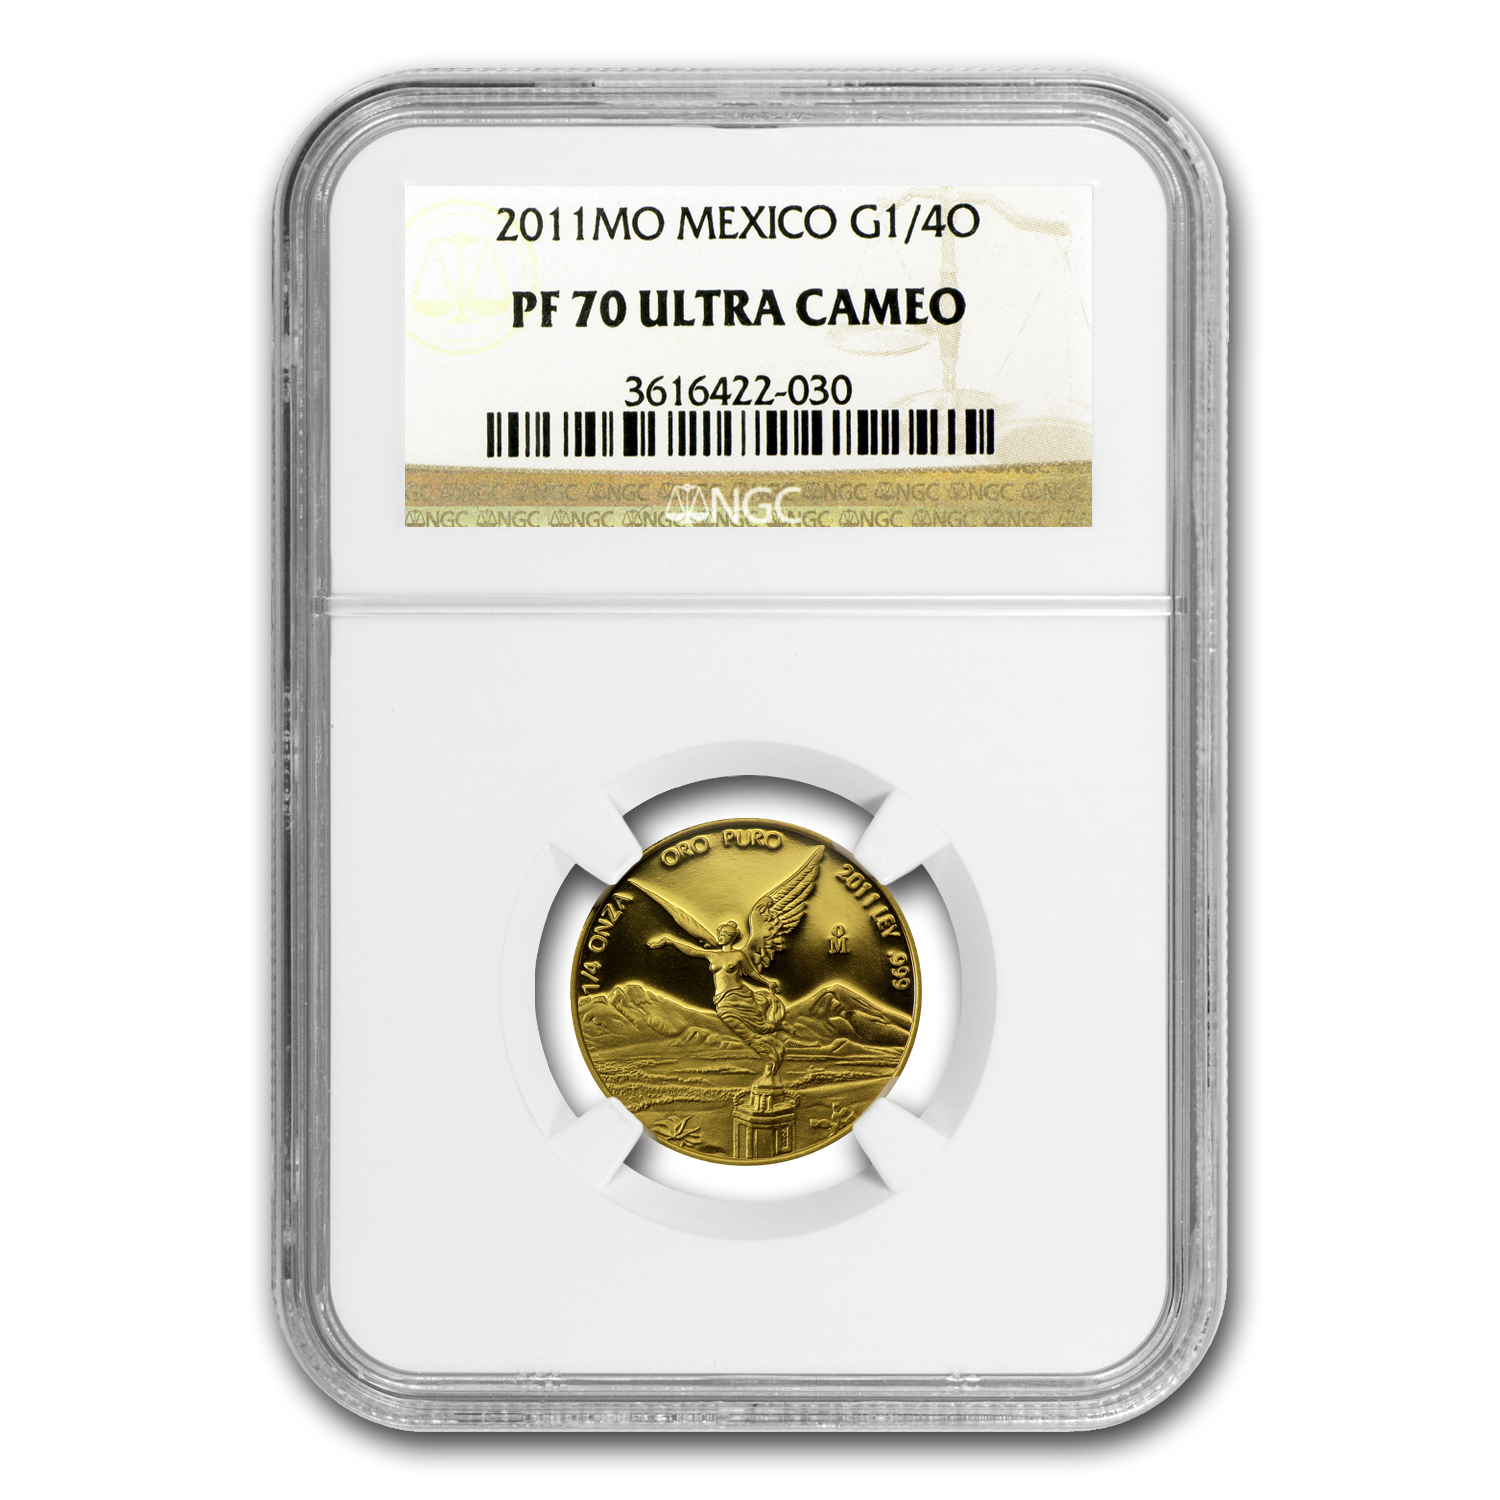 2011 Mexico 1/4 oz Gold Libertad PF-70 NGC